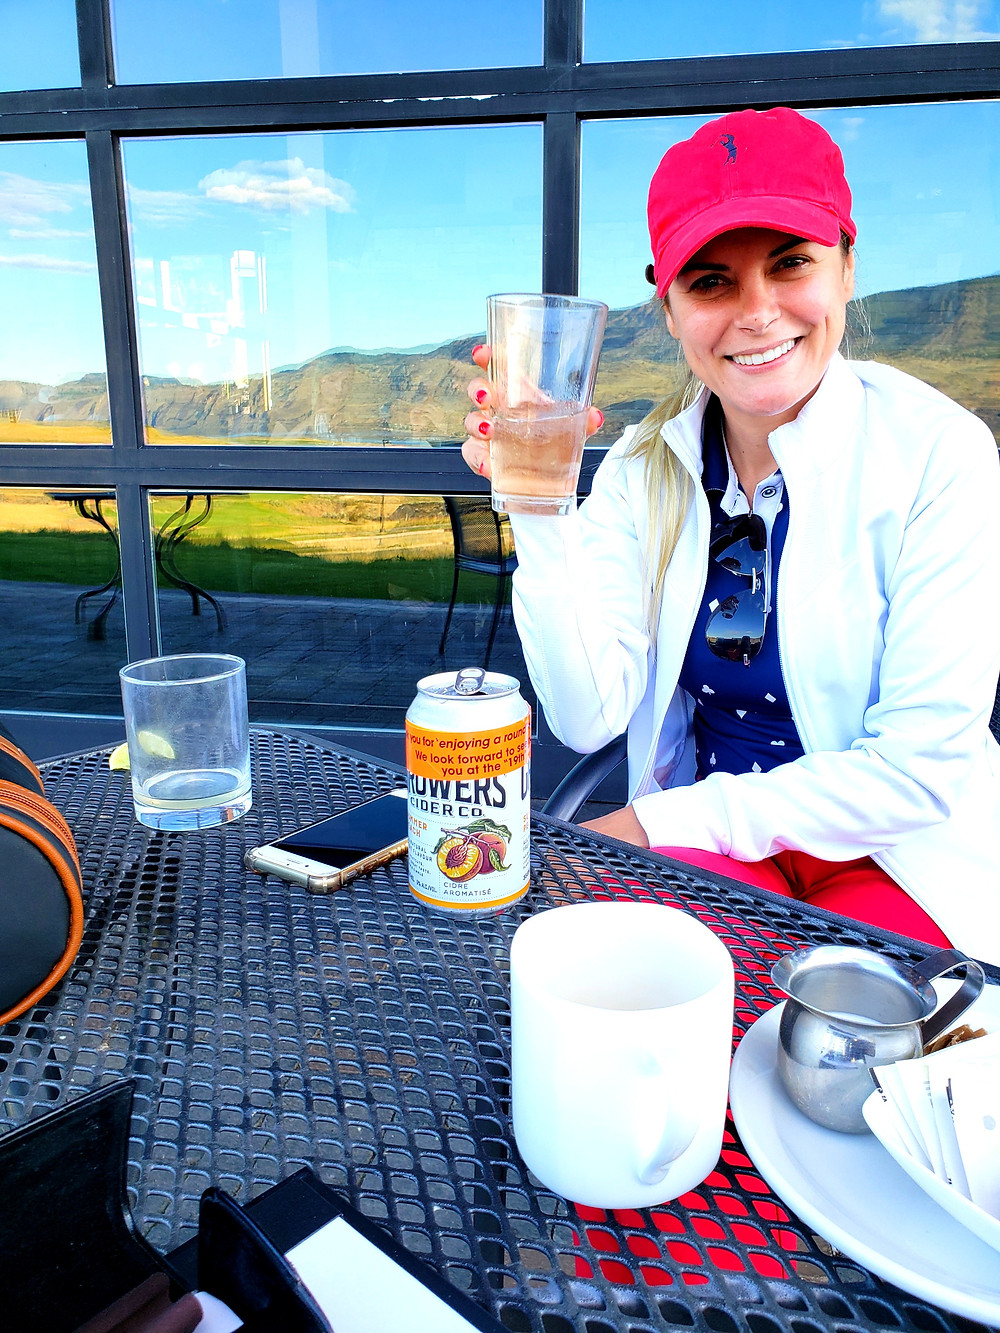 instagram star Graci Zermiani enjoying an after golf cider at Tobiano golf course and Flat Iron Grill in Kamloops BC.